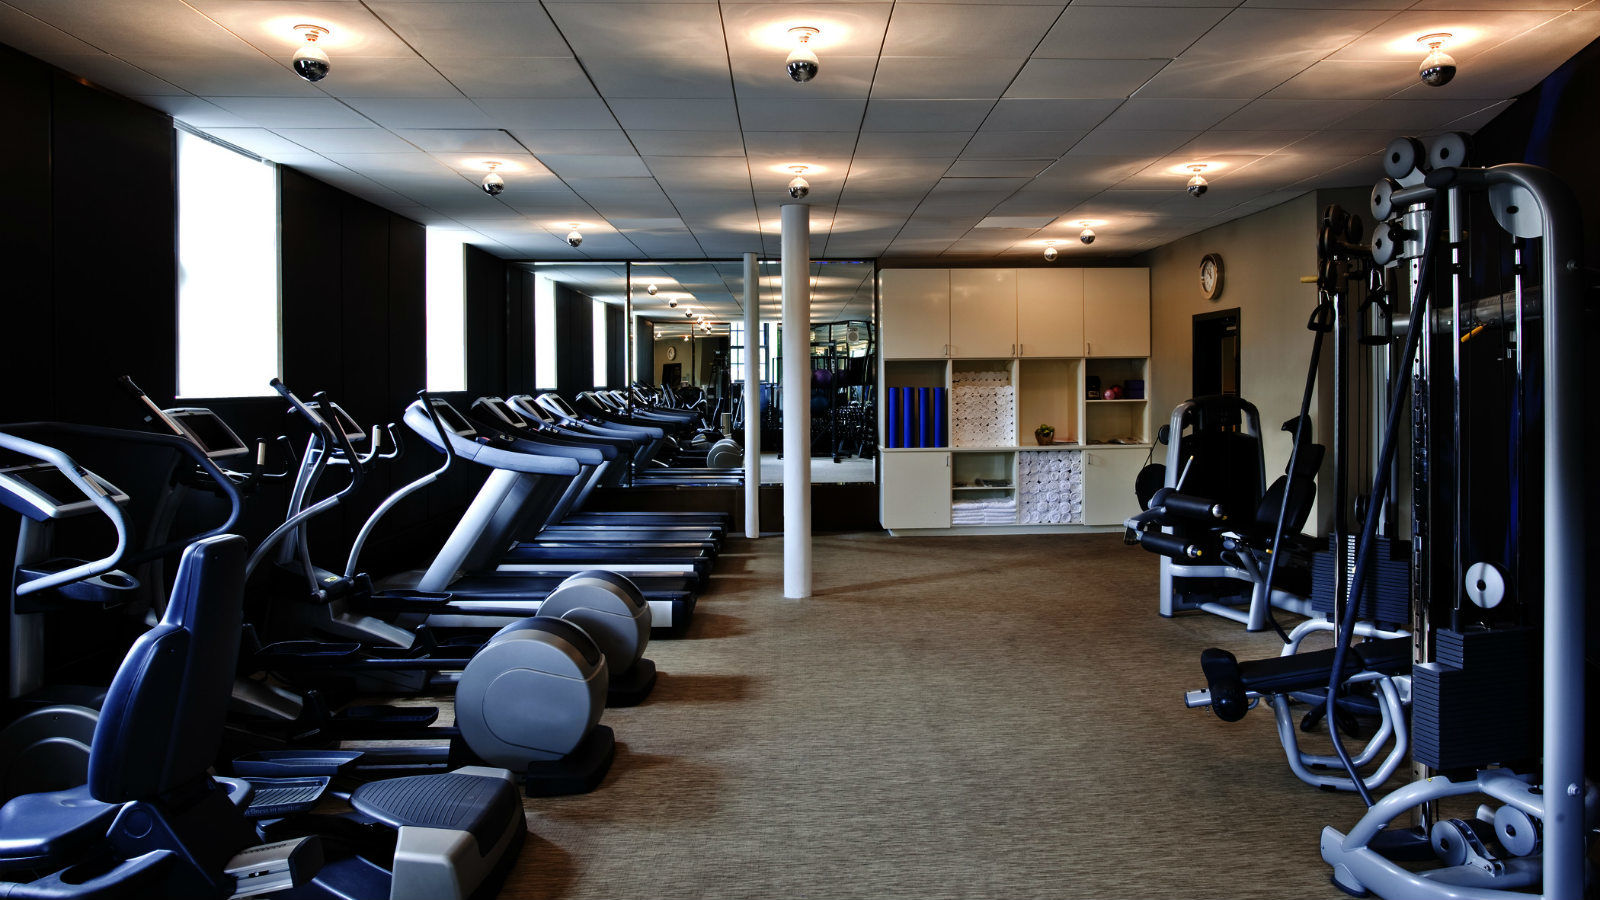 Downtown Washington D.C. Hotel Features - Fitness Center